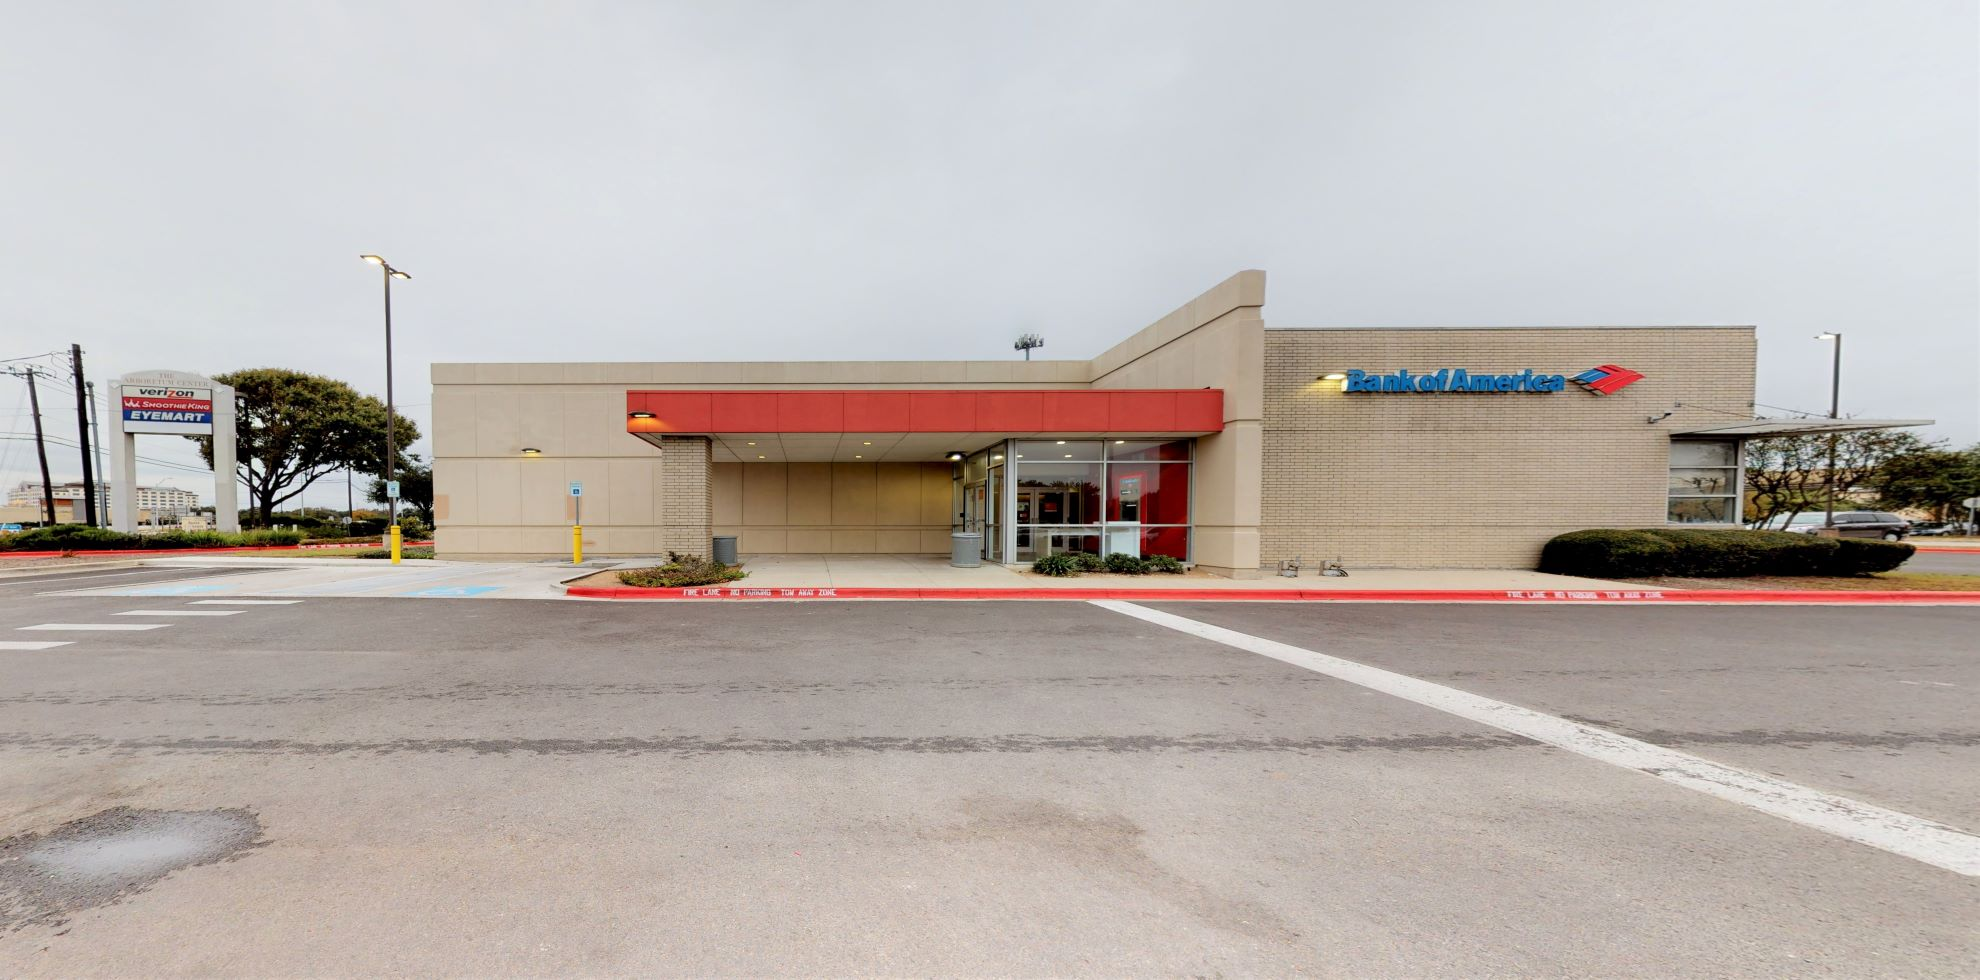 Bank of America financial center with drive-thru ATM   9701 Research Blvd, Austin, TX 78759